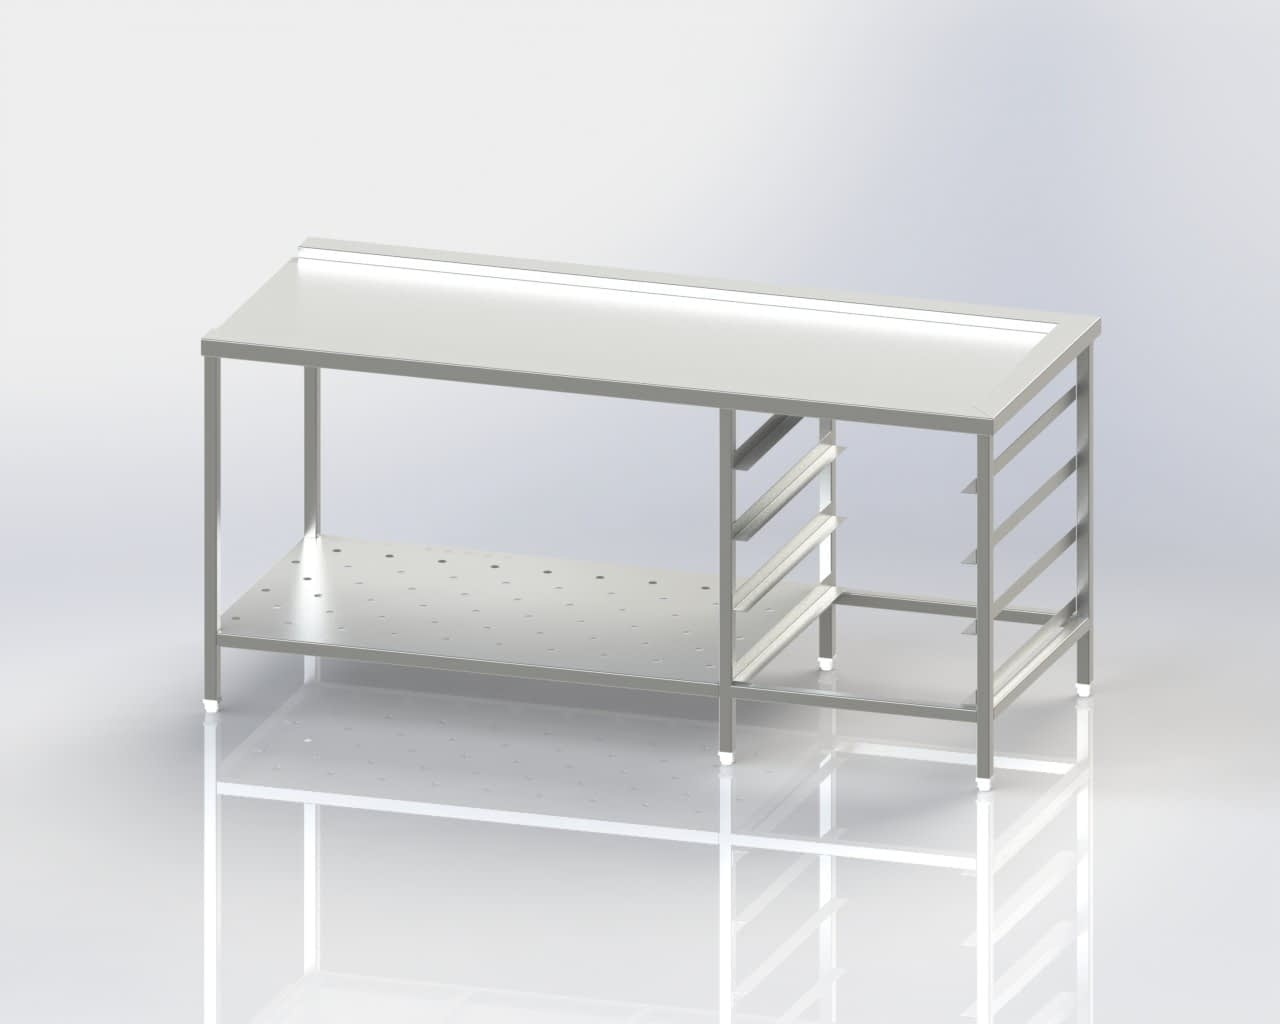 Dish Washer Outlet - Clean Dish Landing Table - Crate Storage - Perforated Shelf